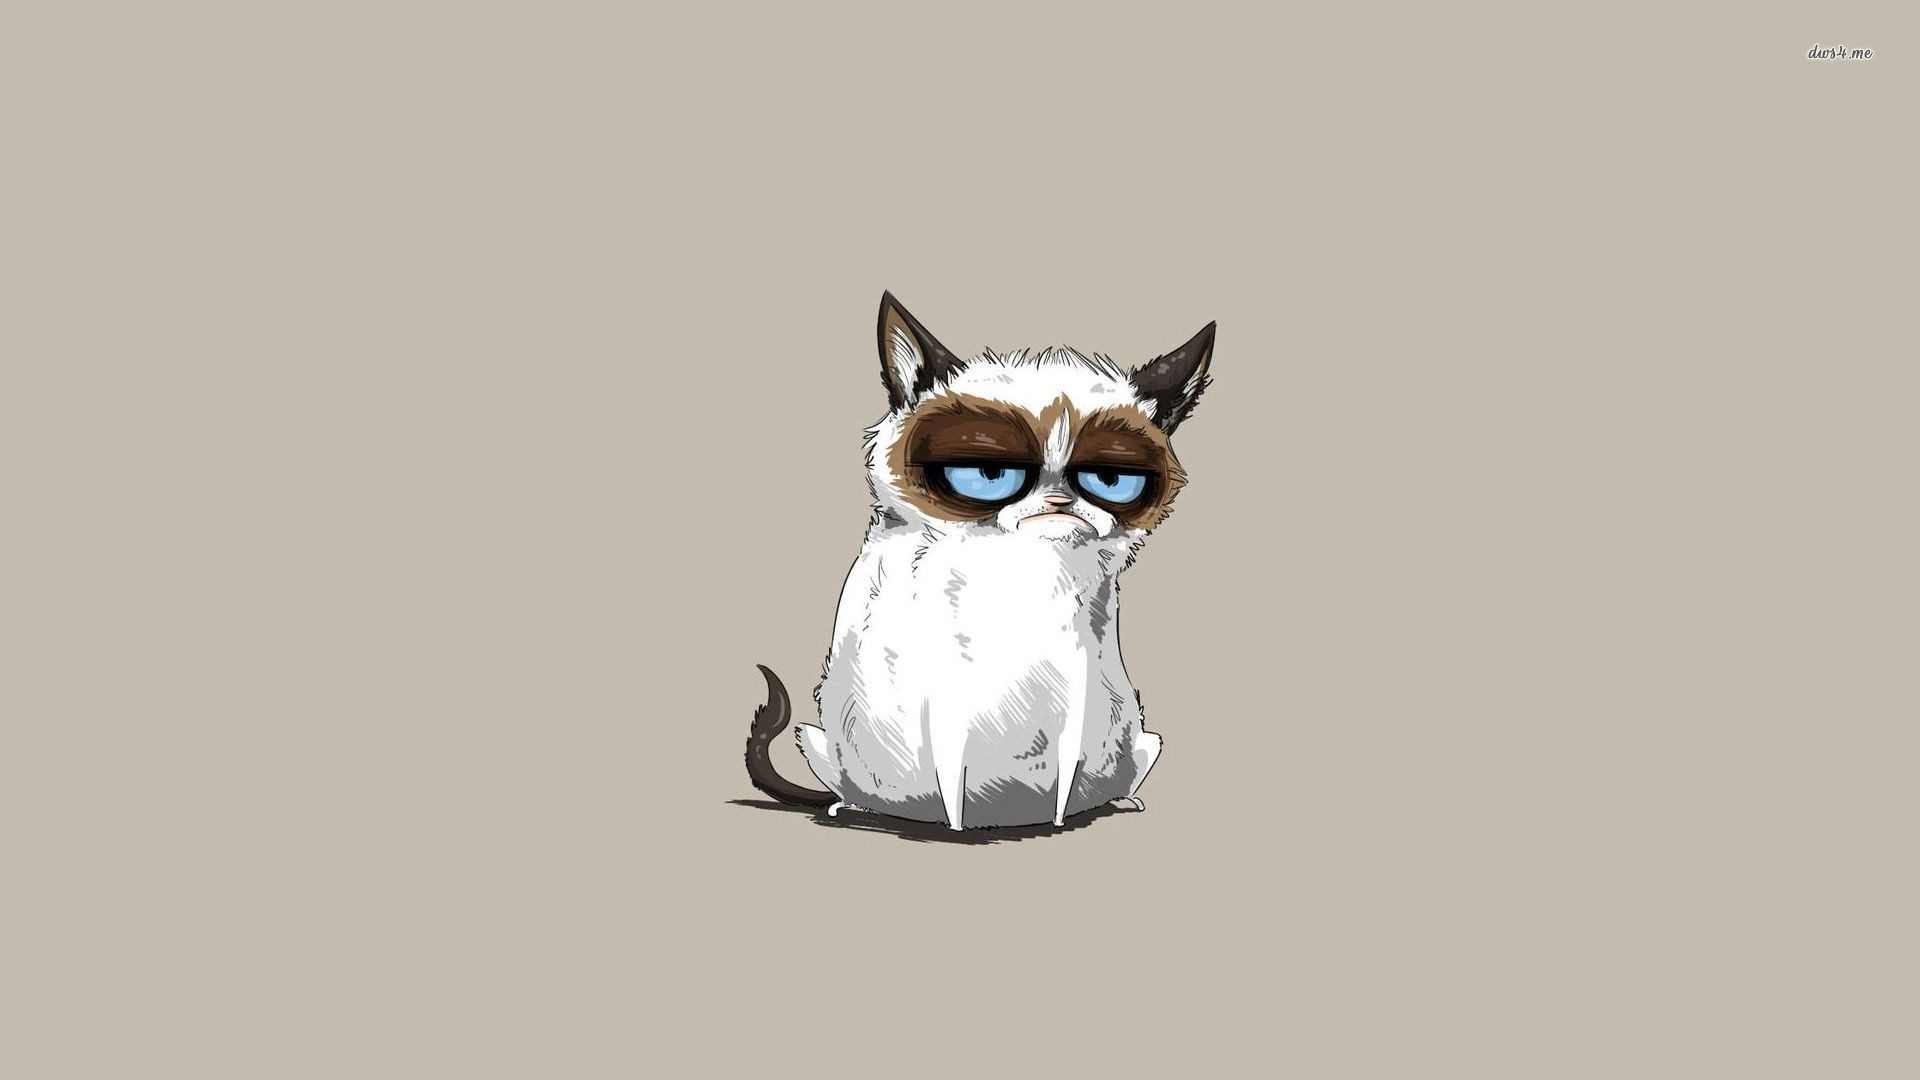 1920x1080 Cat · Grumpy Cat Wallpaper Background with HD ...